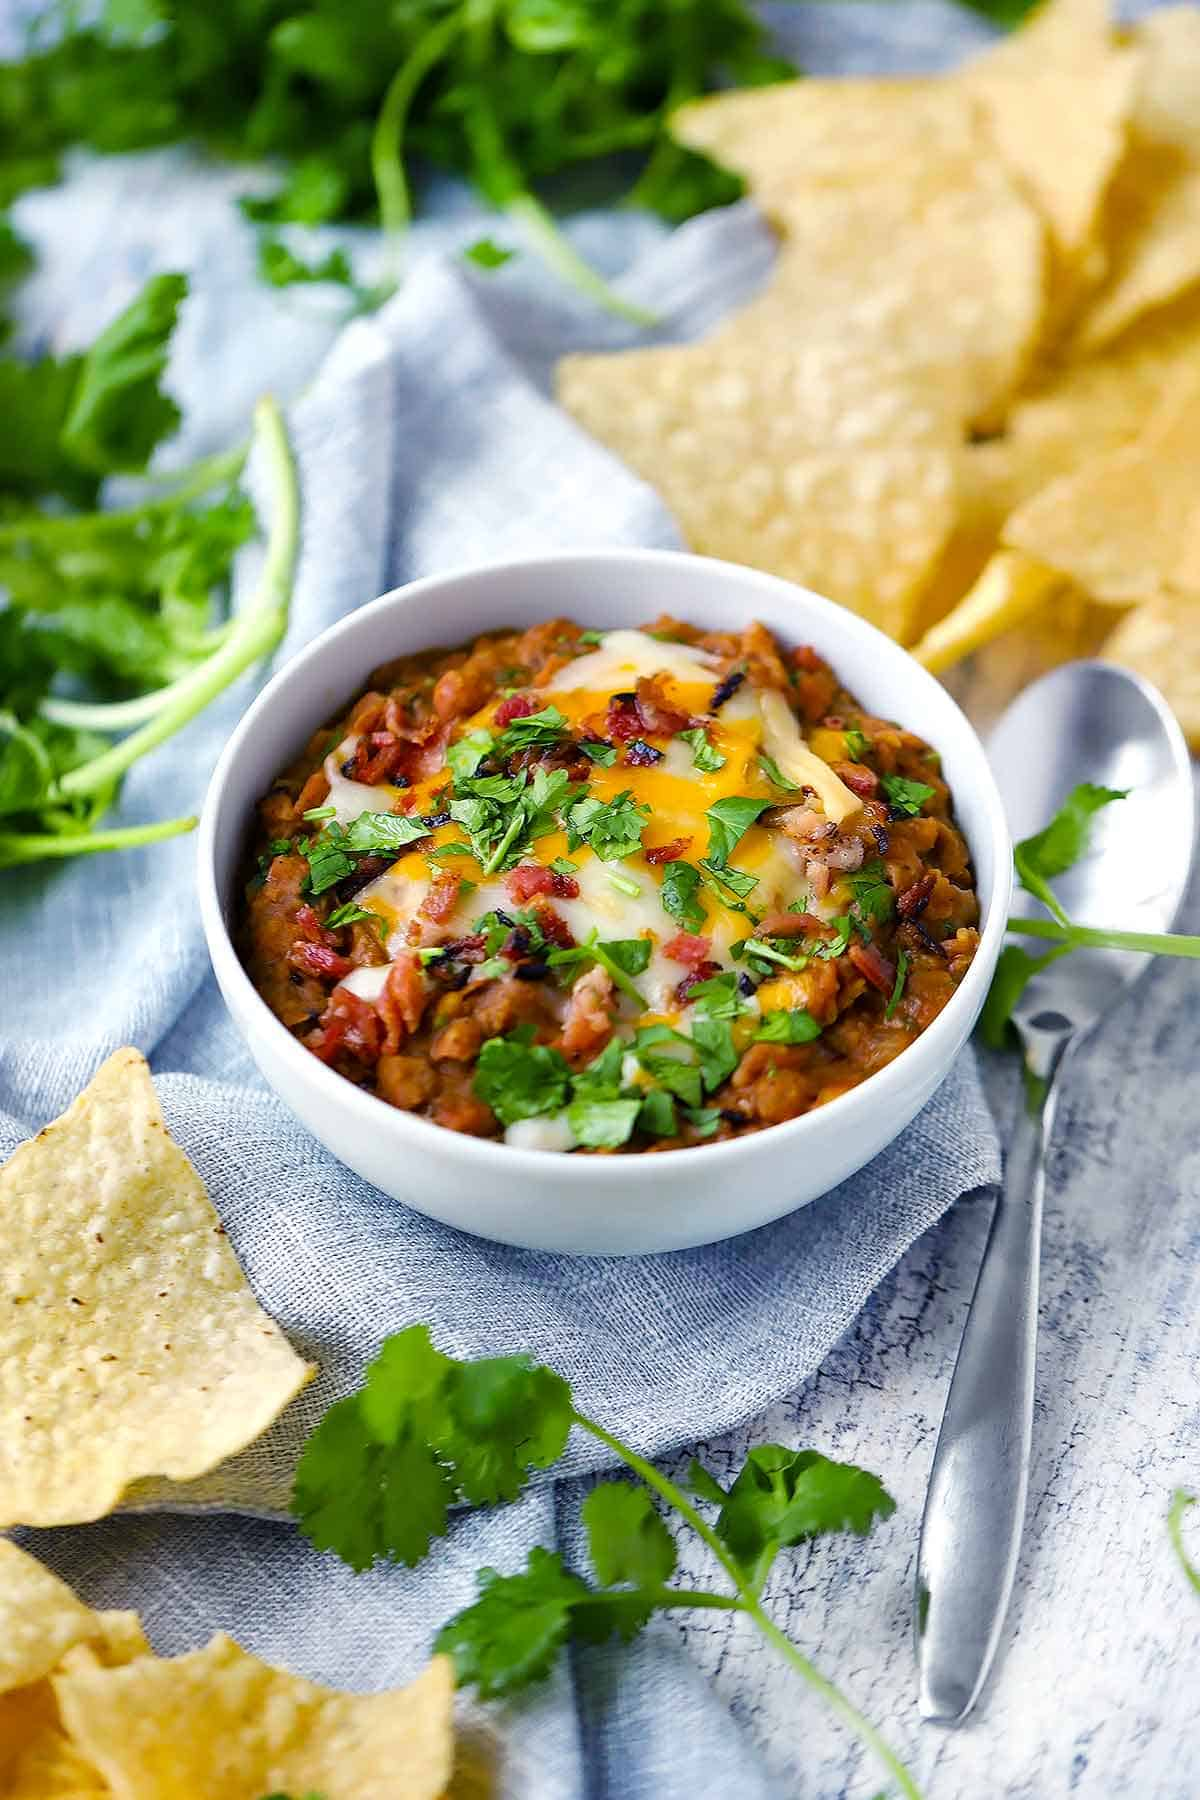 Photo collage showing the steps to making refried beans: sautéing onions, browning ingredients, the skillet with beans added, and the skillet with the beans mashed.